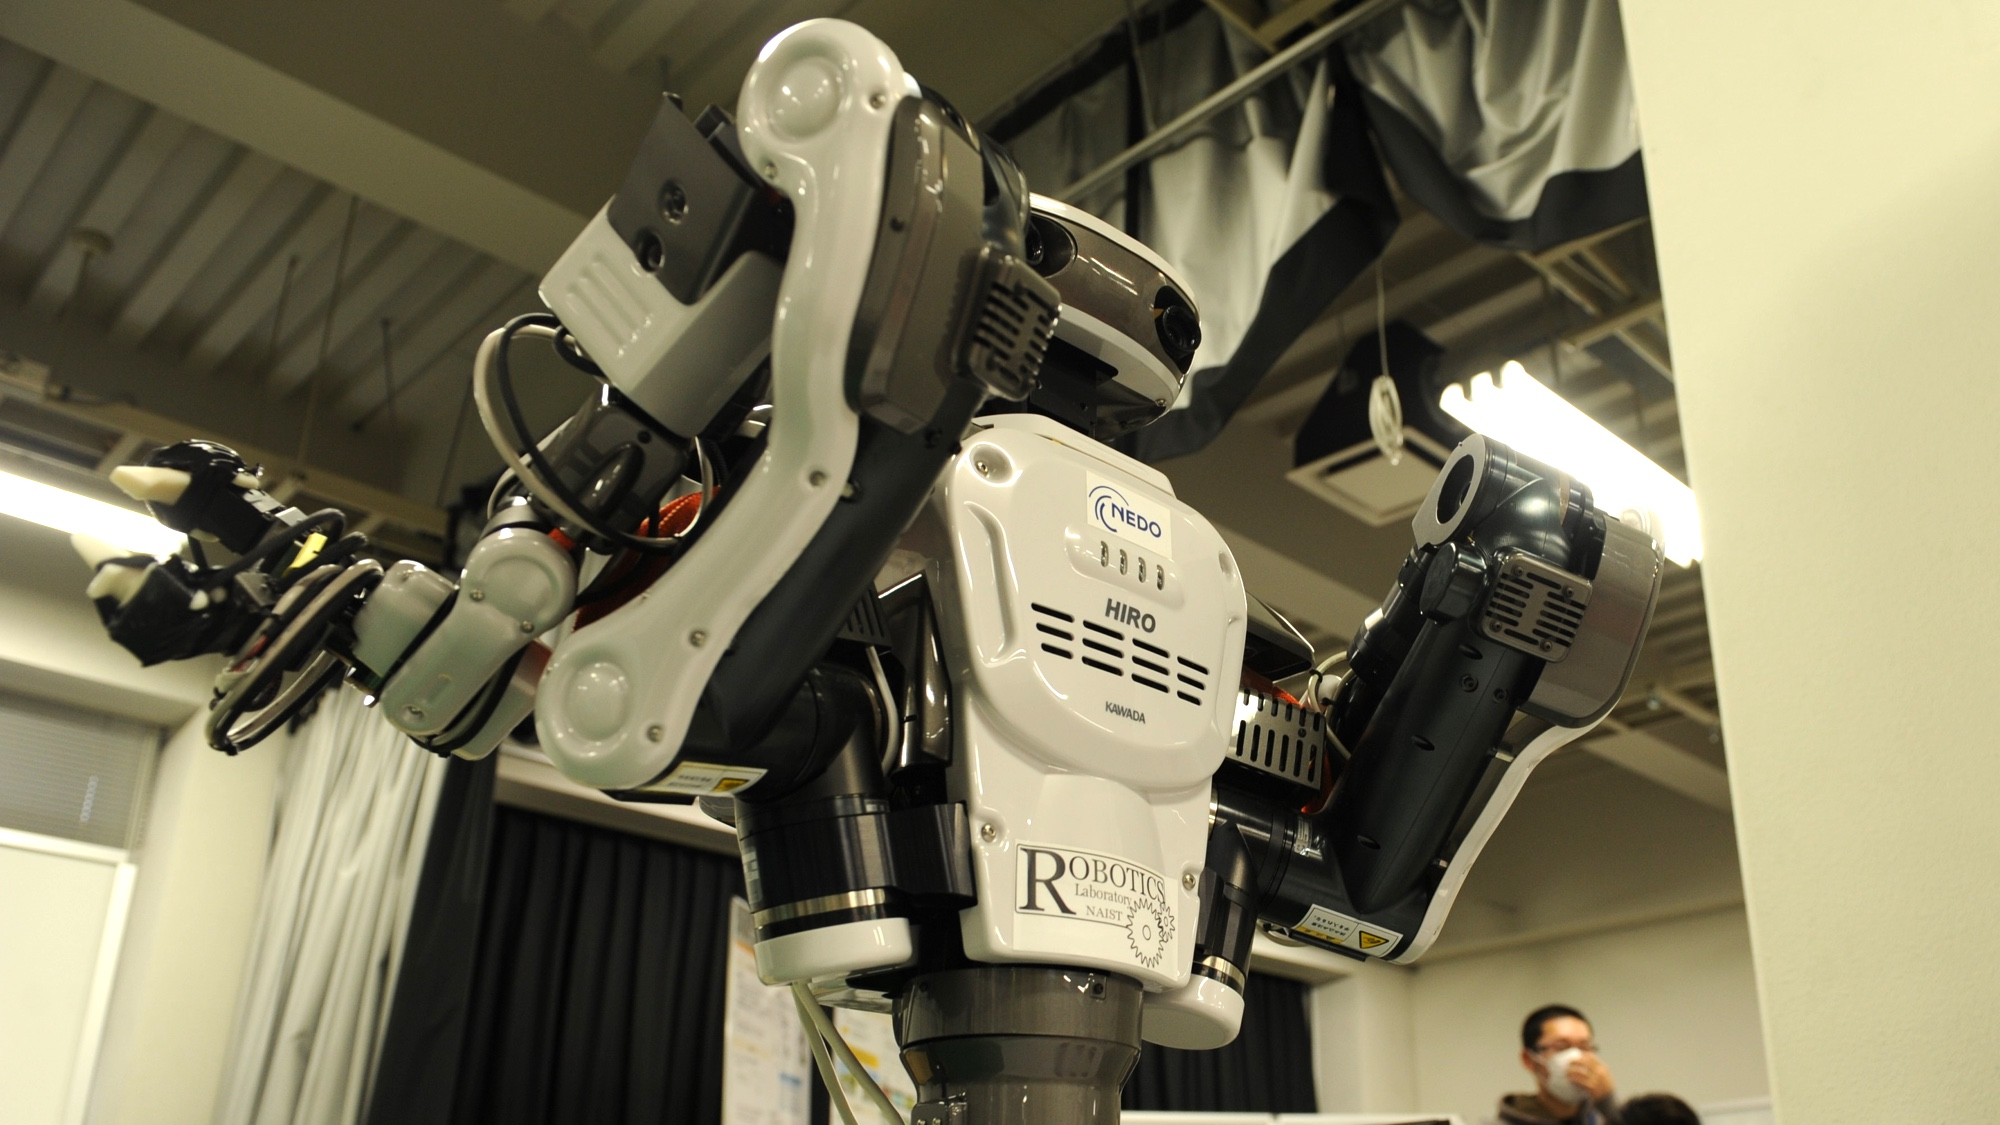 HIRO robot from Kawada Industries at the Robotics Laboratory.